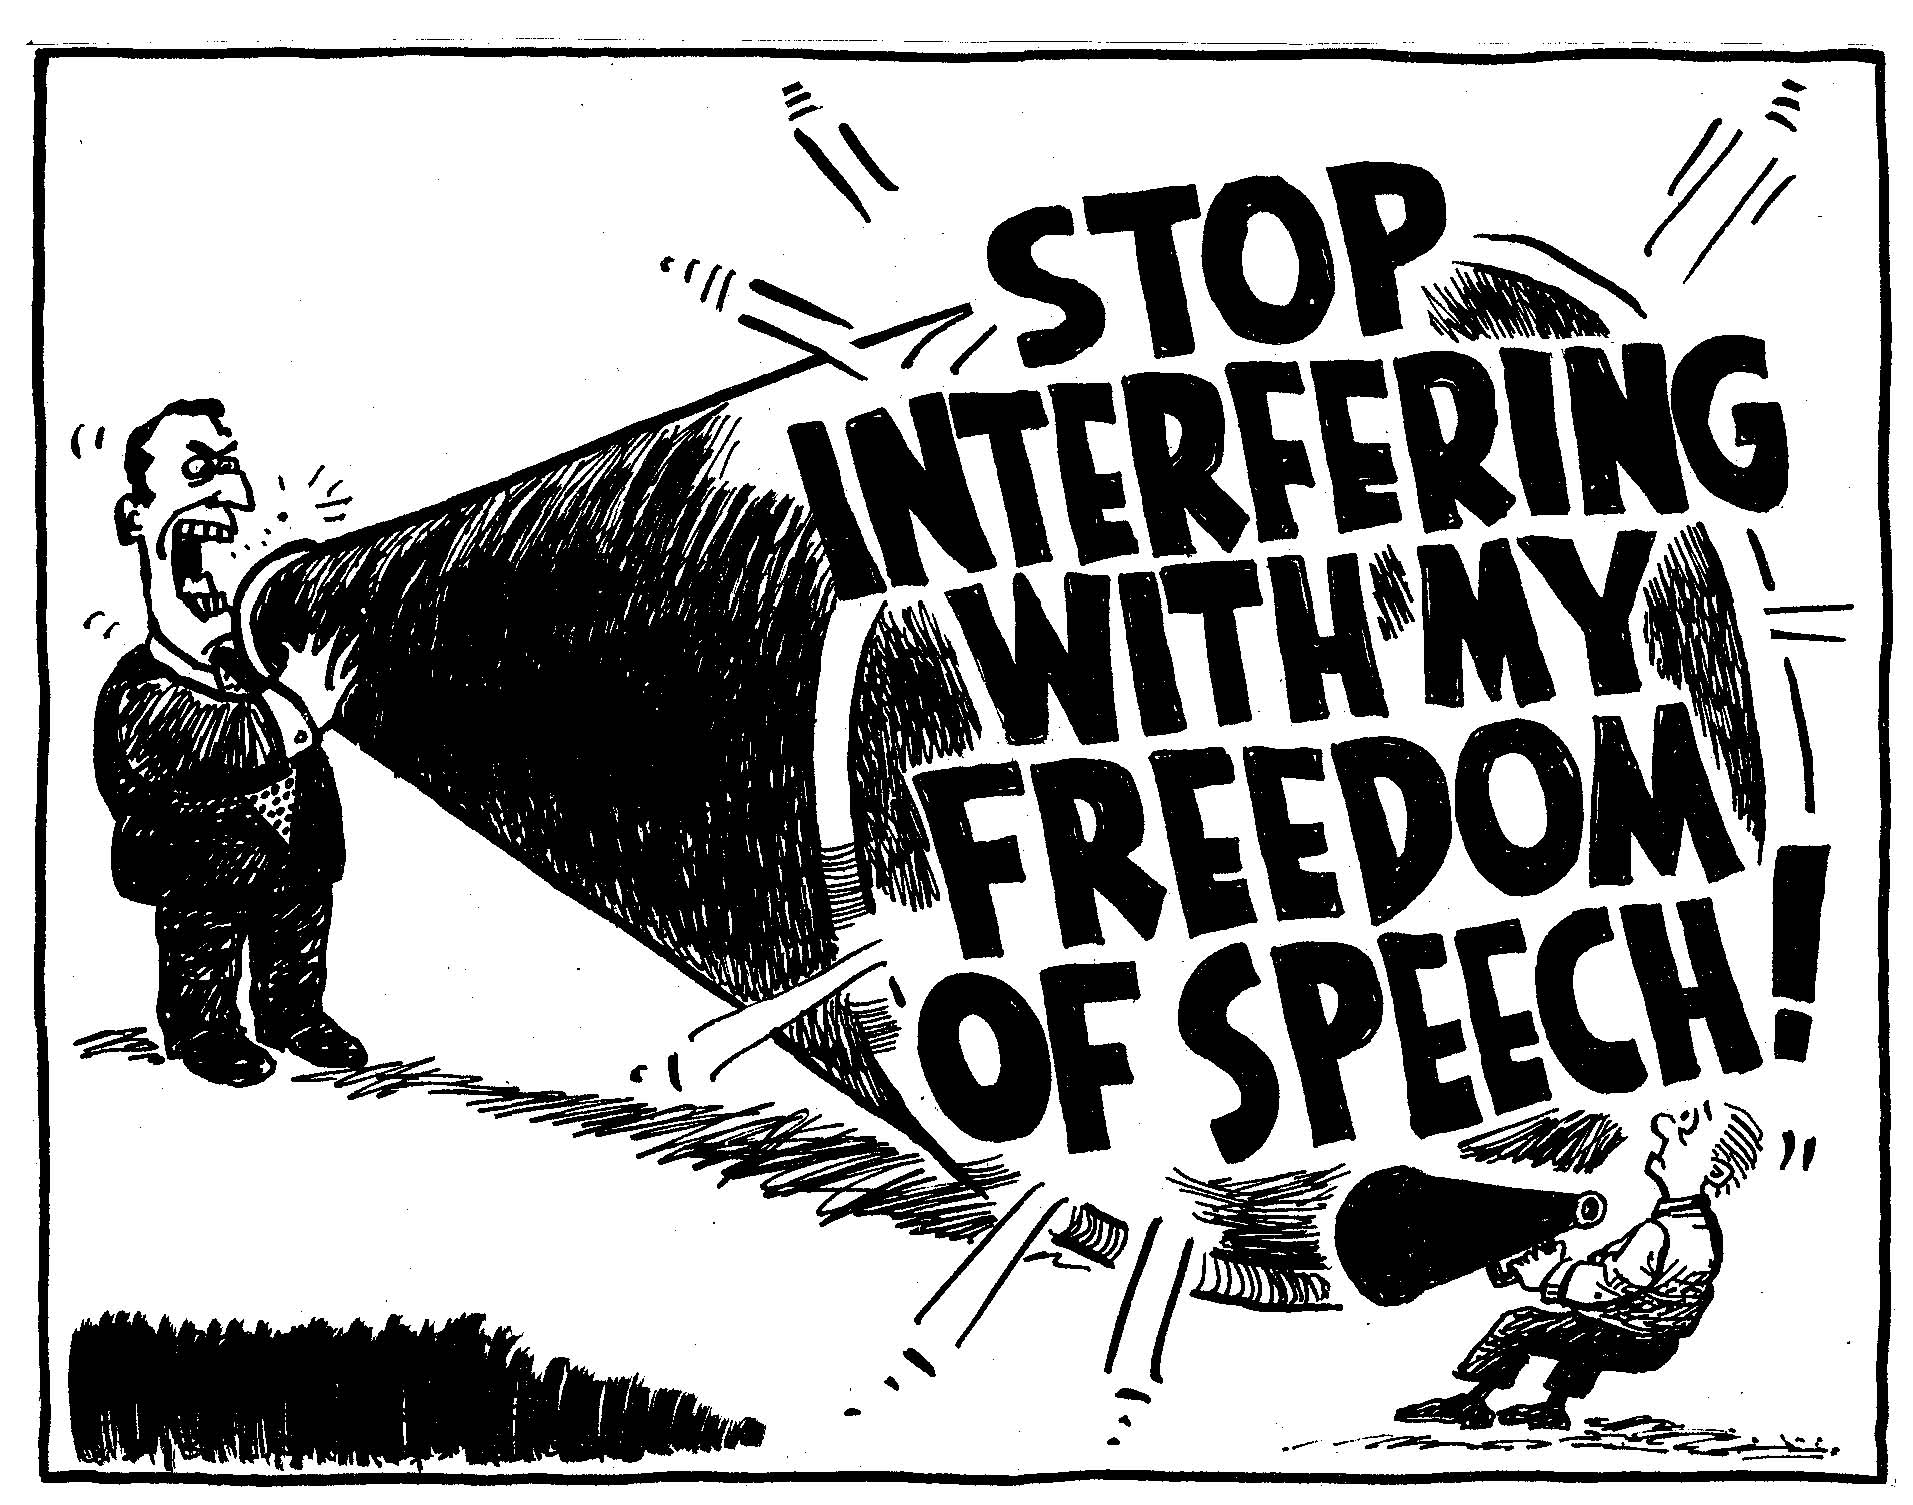 the misuse of freedom of speech If freedom of speech is designed to facilitate useful and meaningful progress in a society, the misuse of it destroys its necessity it no longer serves a purpose, and as lippmann suggests, may even create discord where it otherwise may not exist.